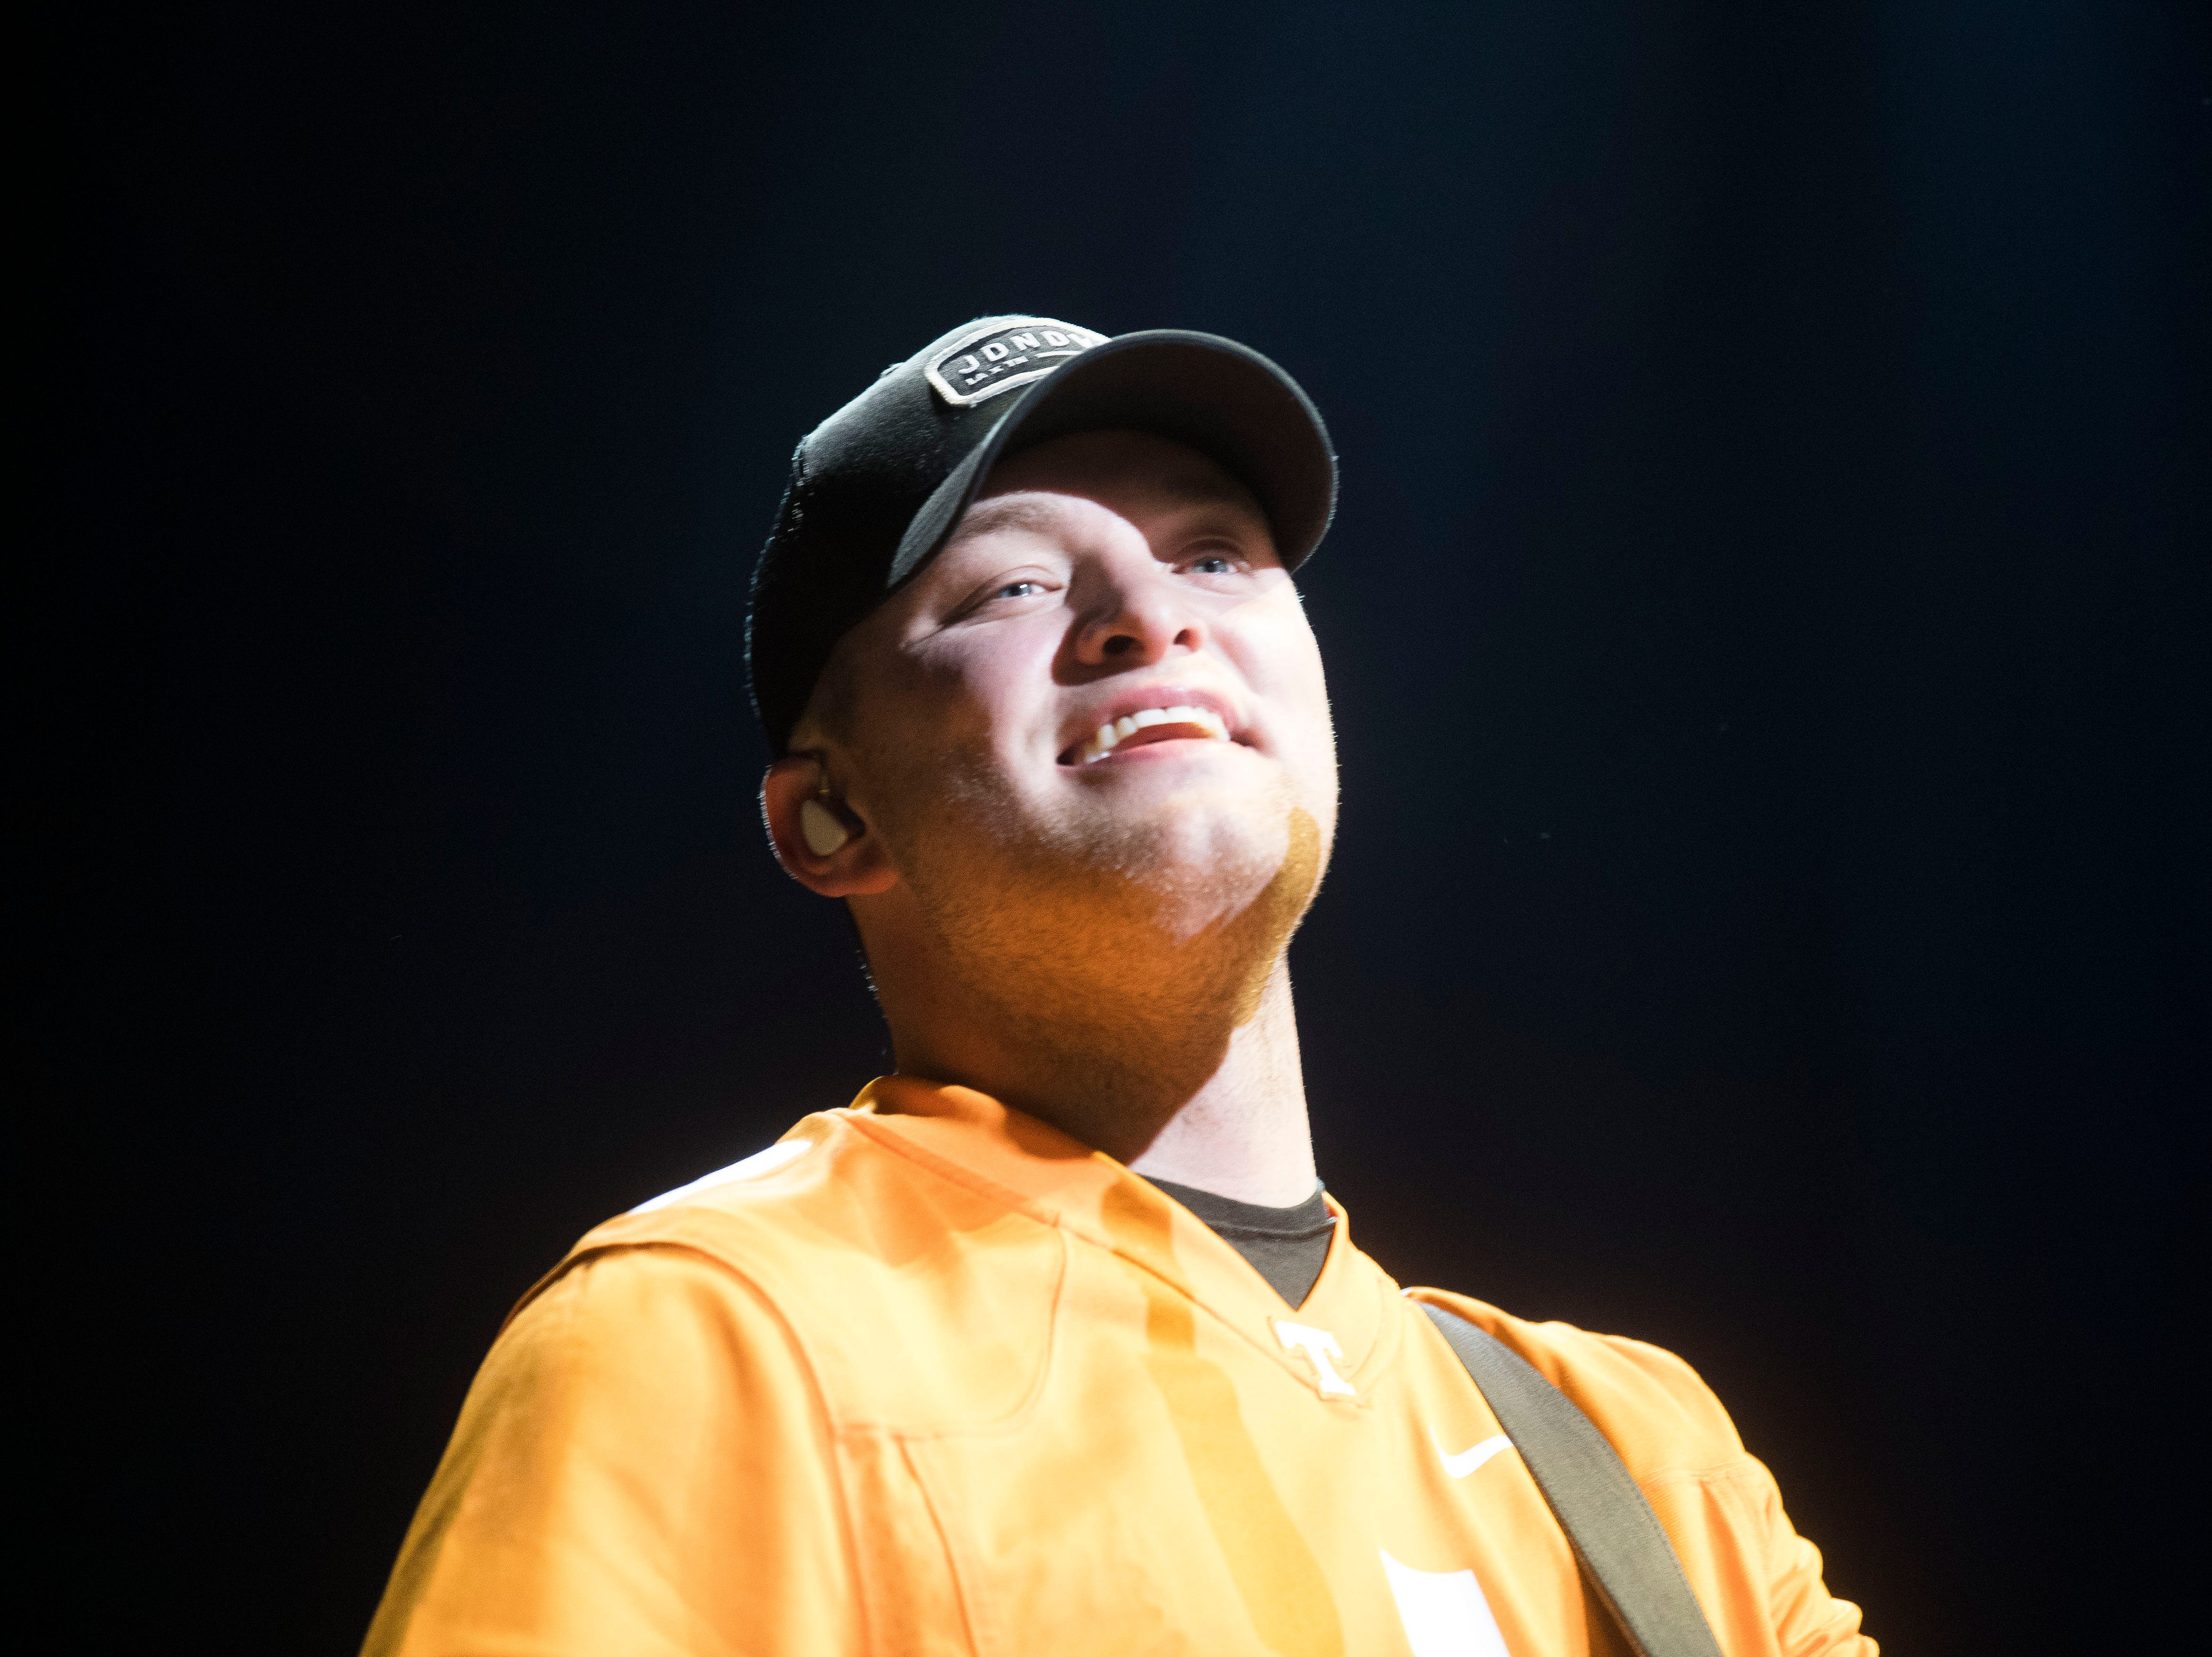 Jordan Walker of Walker McGuire opens for Luke Combs in Thompson-Boling Arena in Knoxville Friday, Feb. 15, 2019.